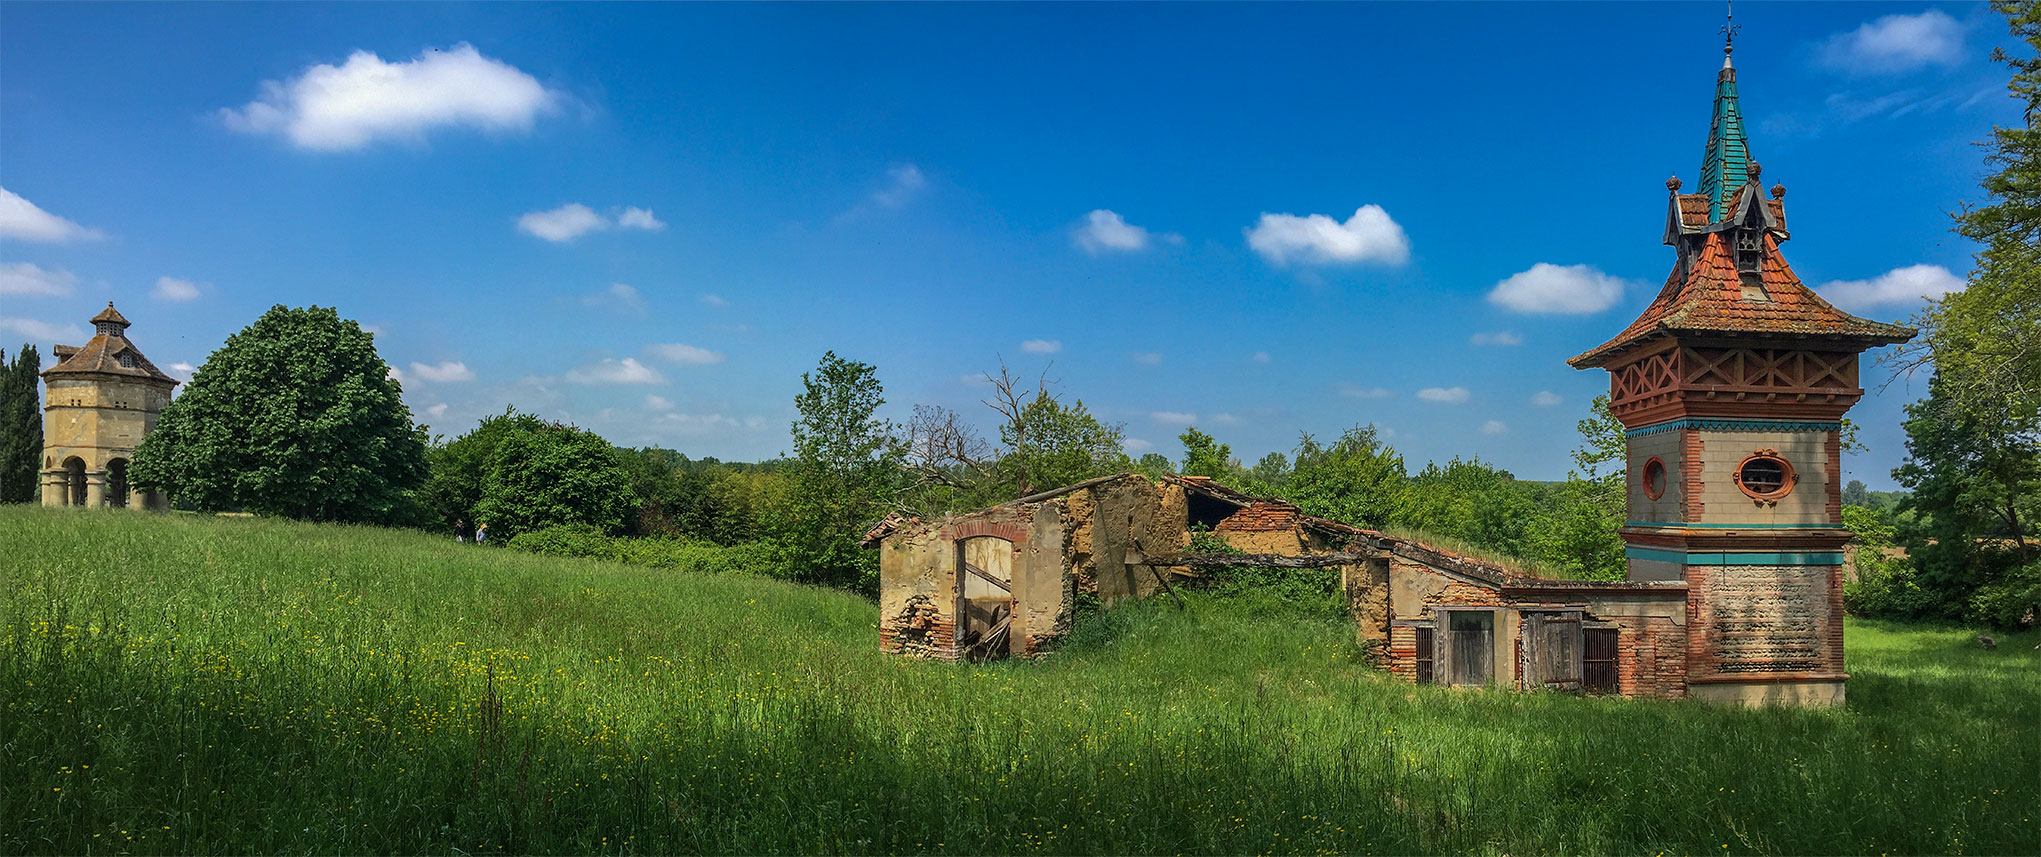 Panorama of the two Pigeonniers at Chateau Beillard, near Merville